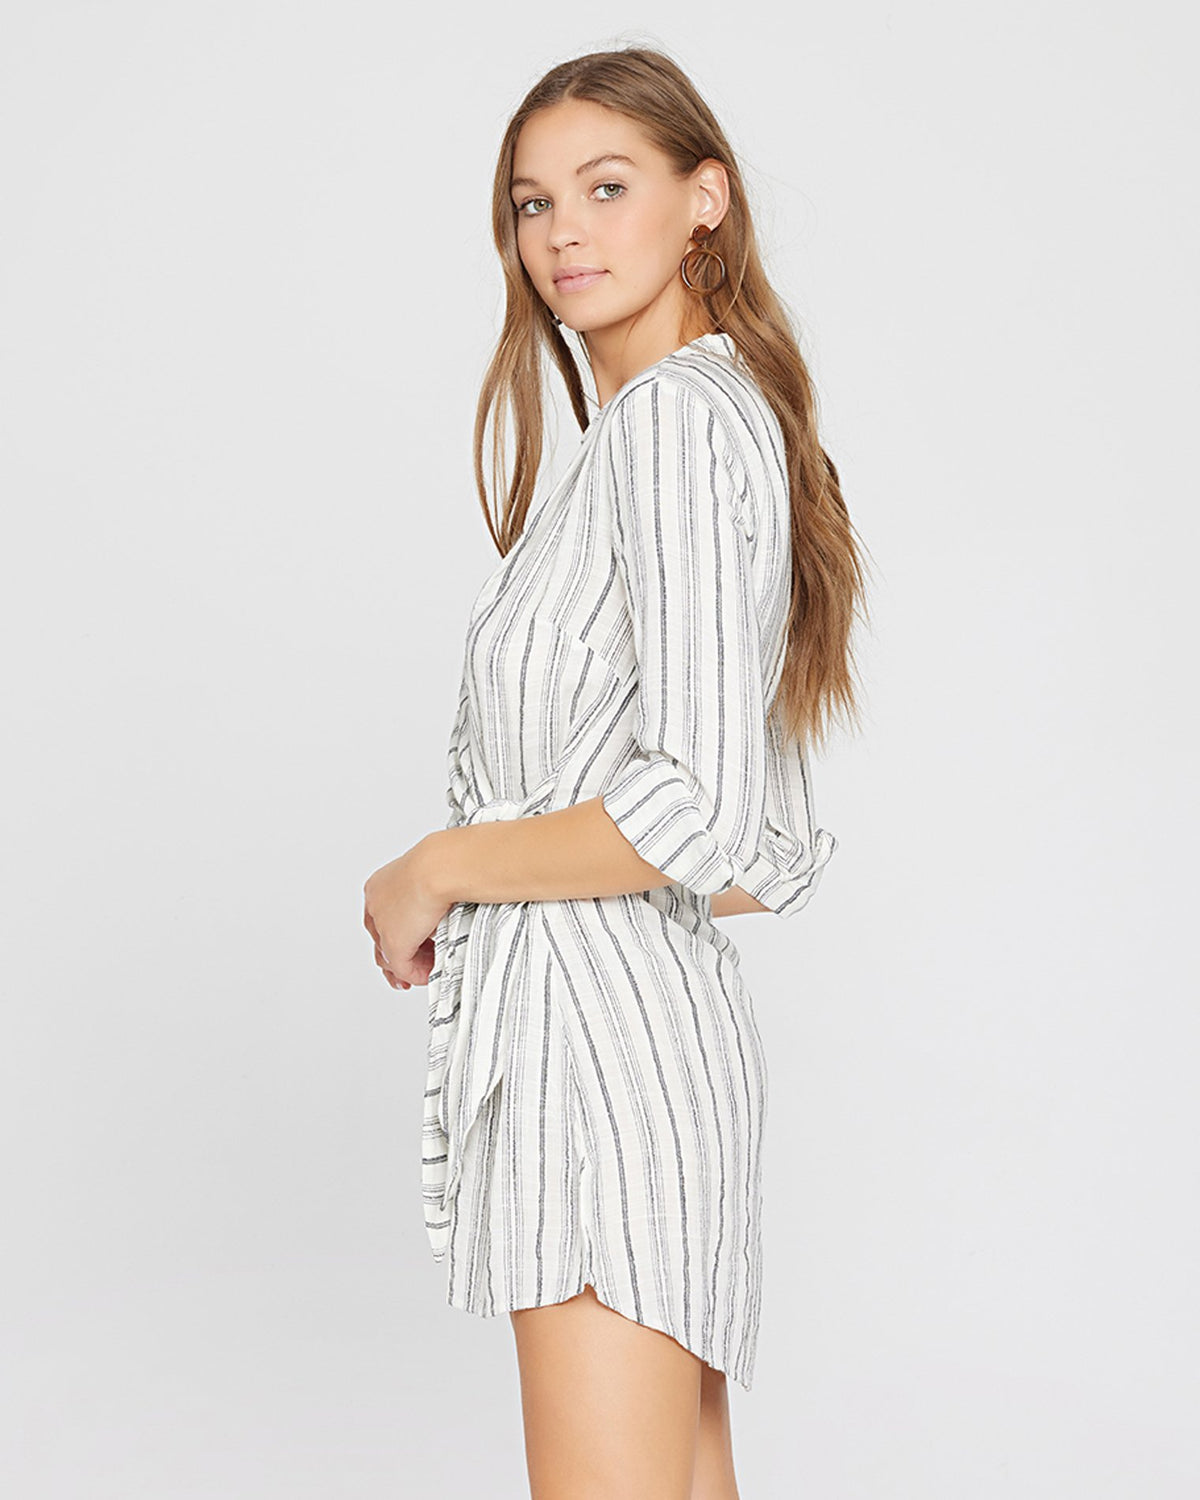 Summer Nights Stripe | Daria (size: S)